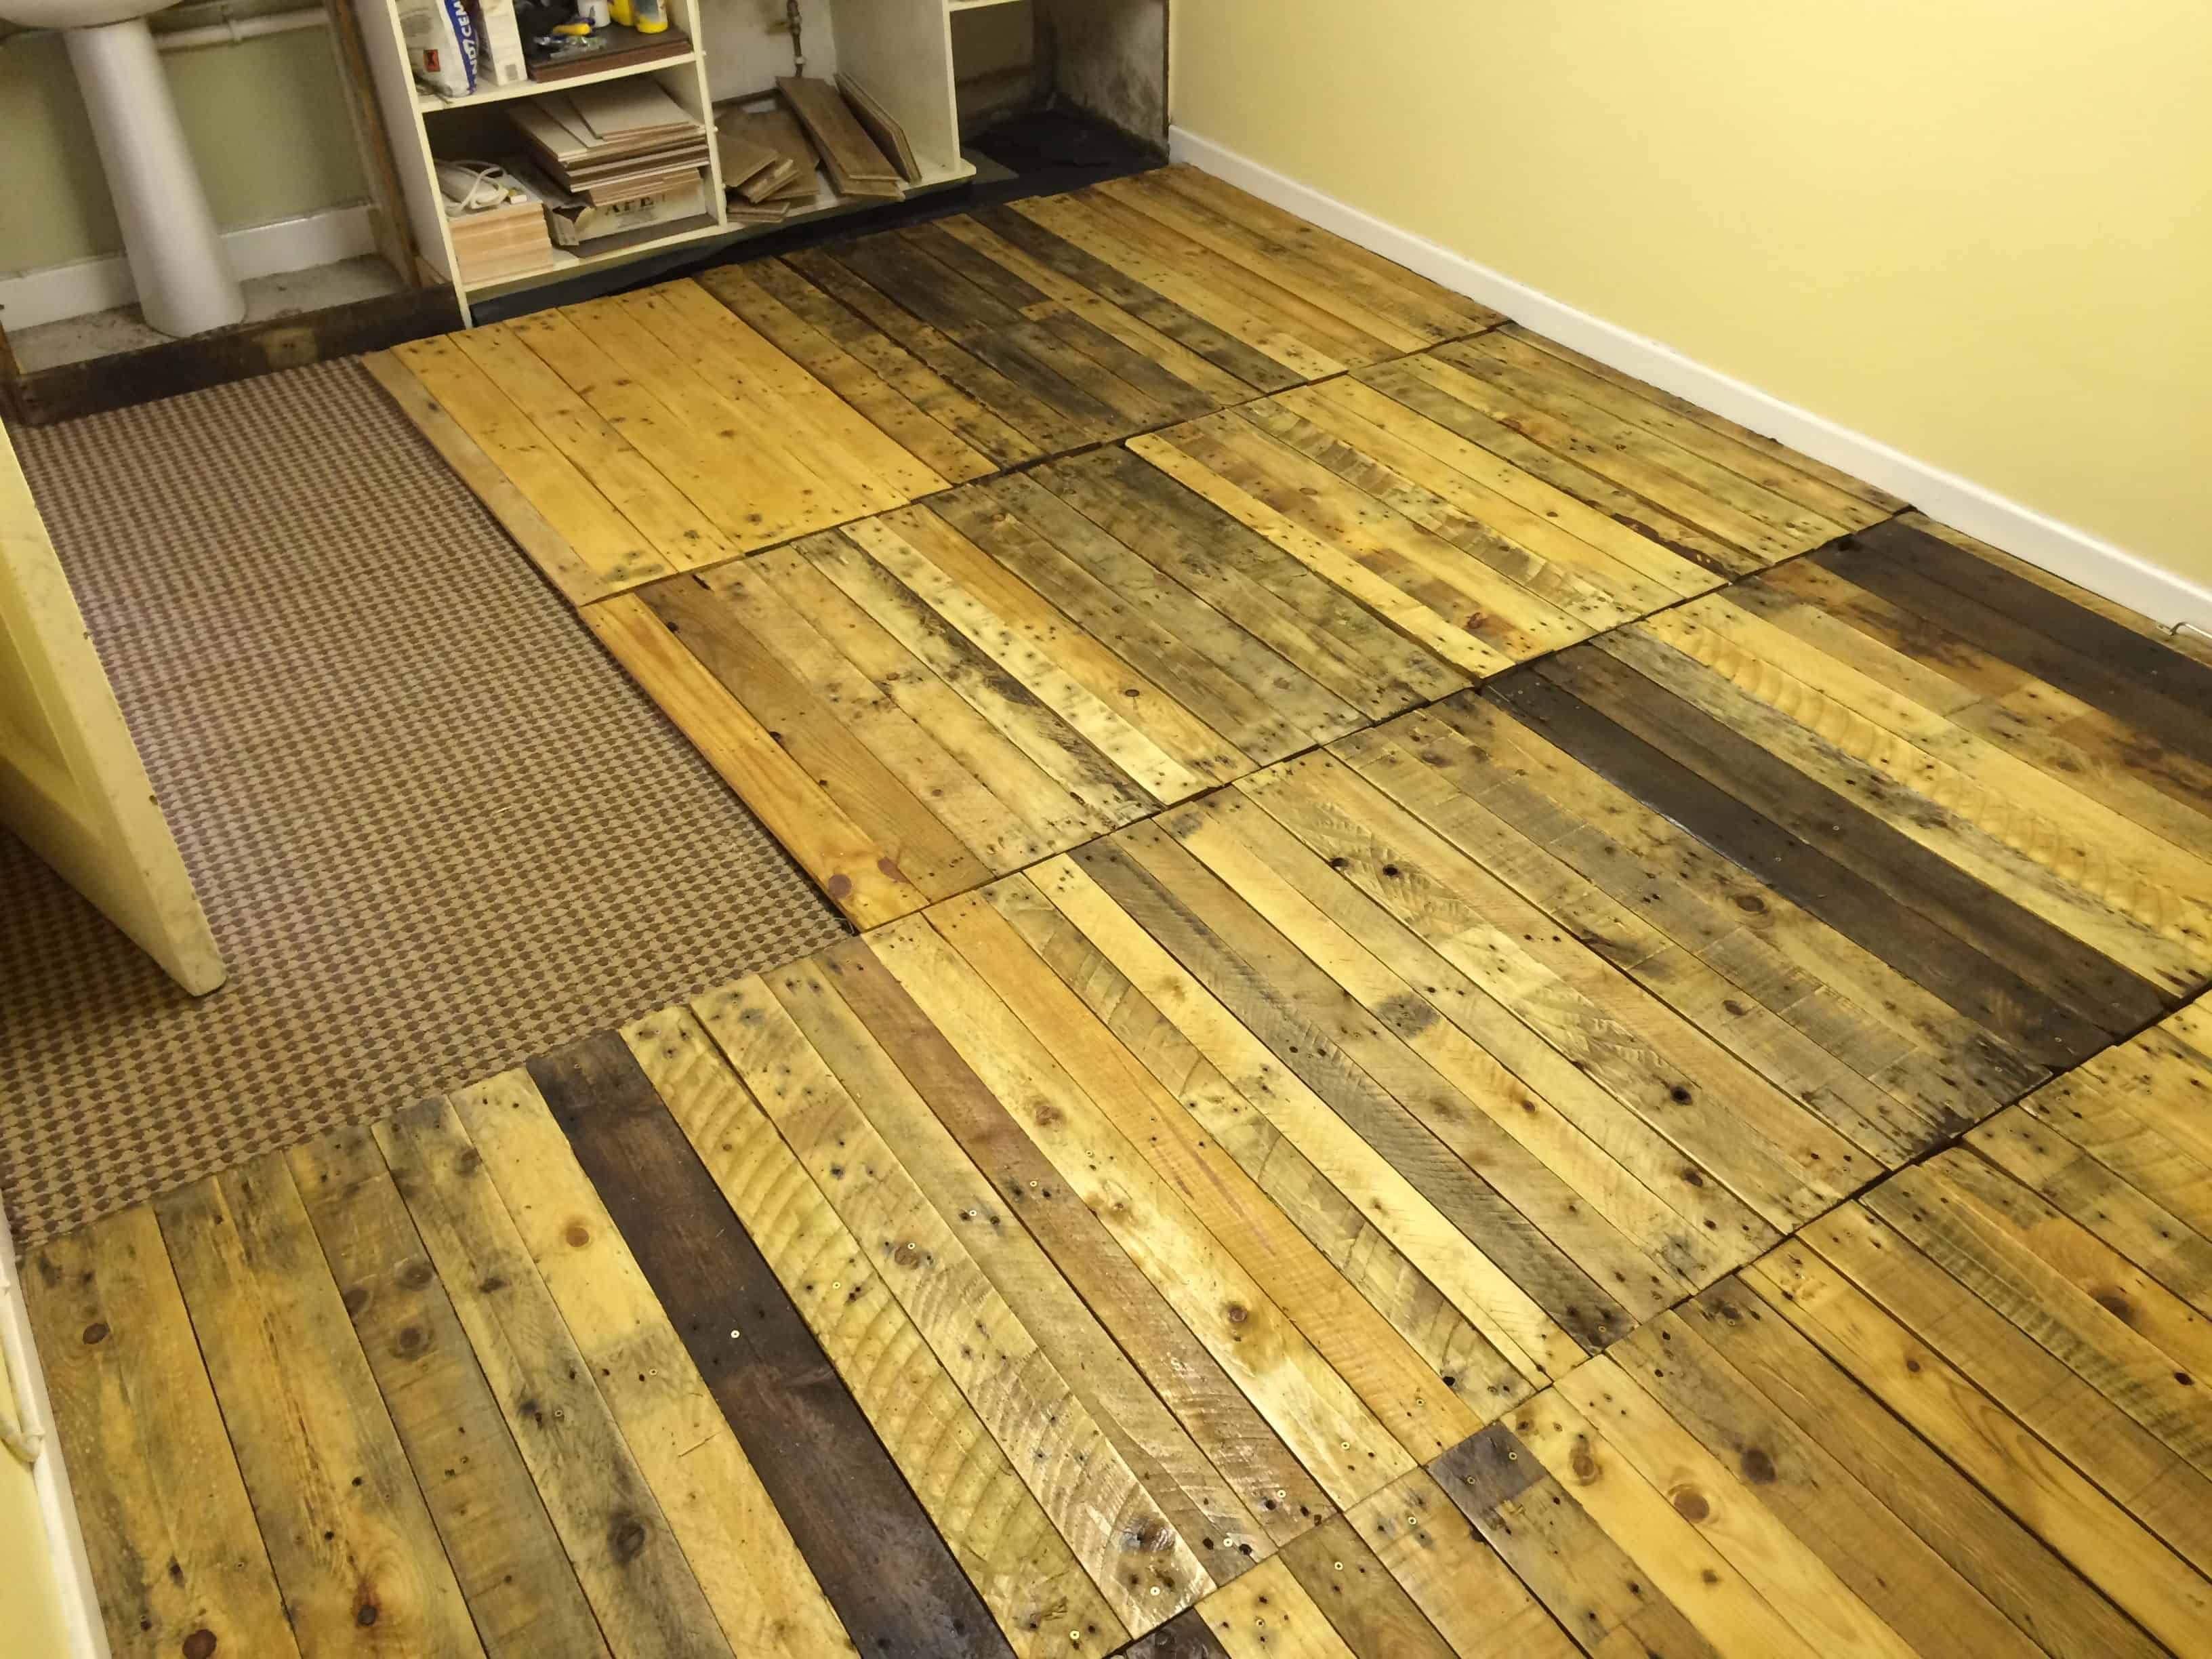 Removable Pallet Kitchen Floor! • Pallet Ideas • 1001 Pallets